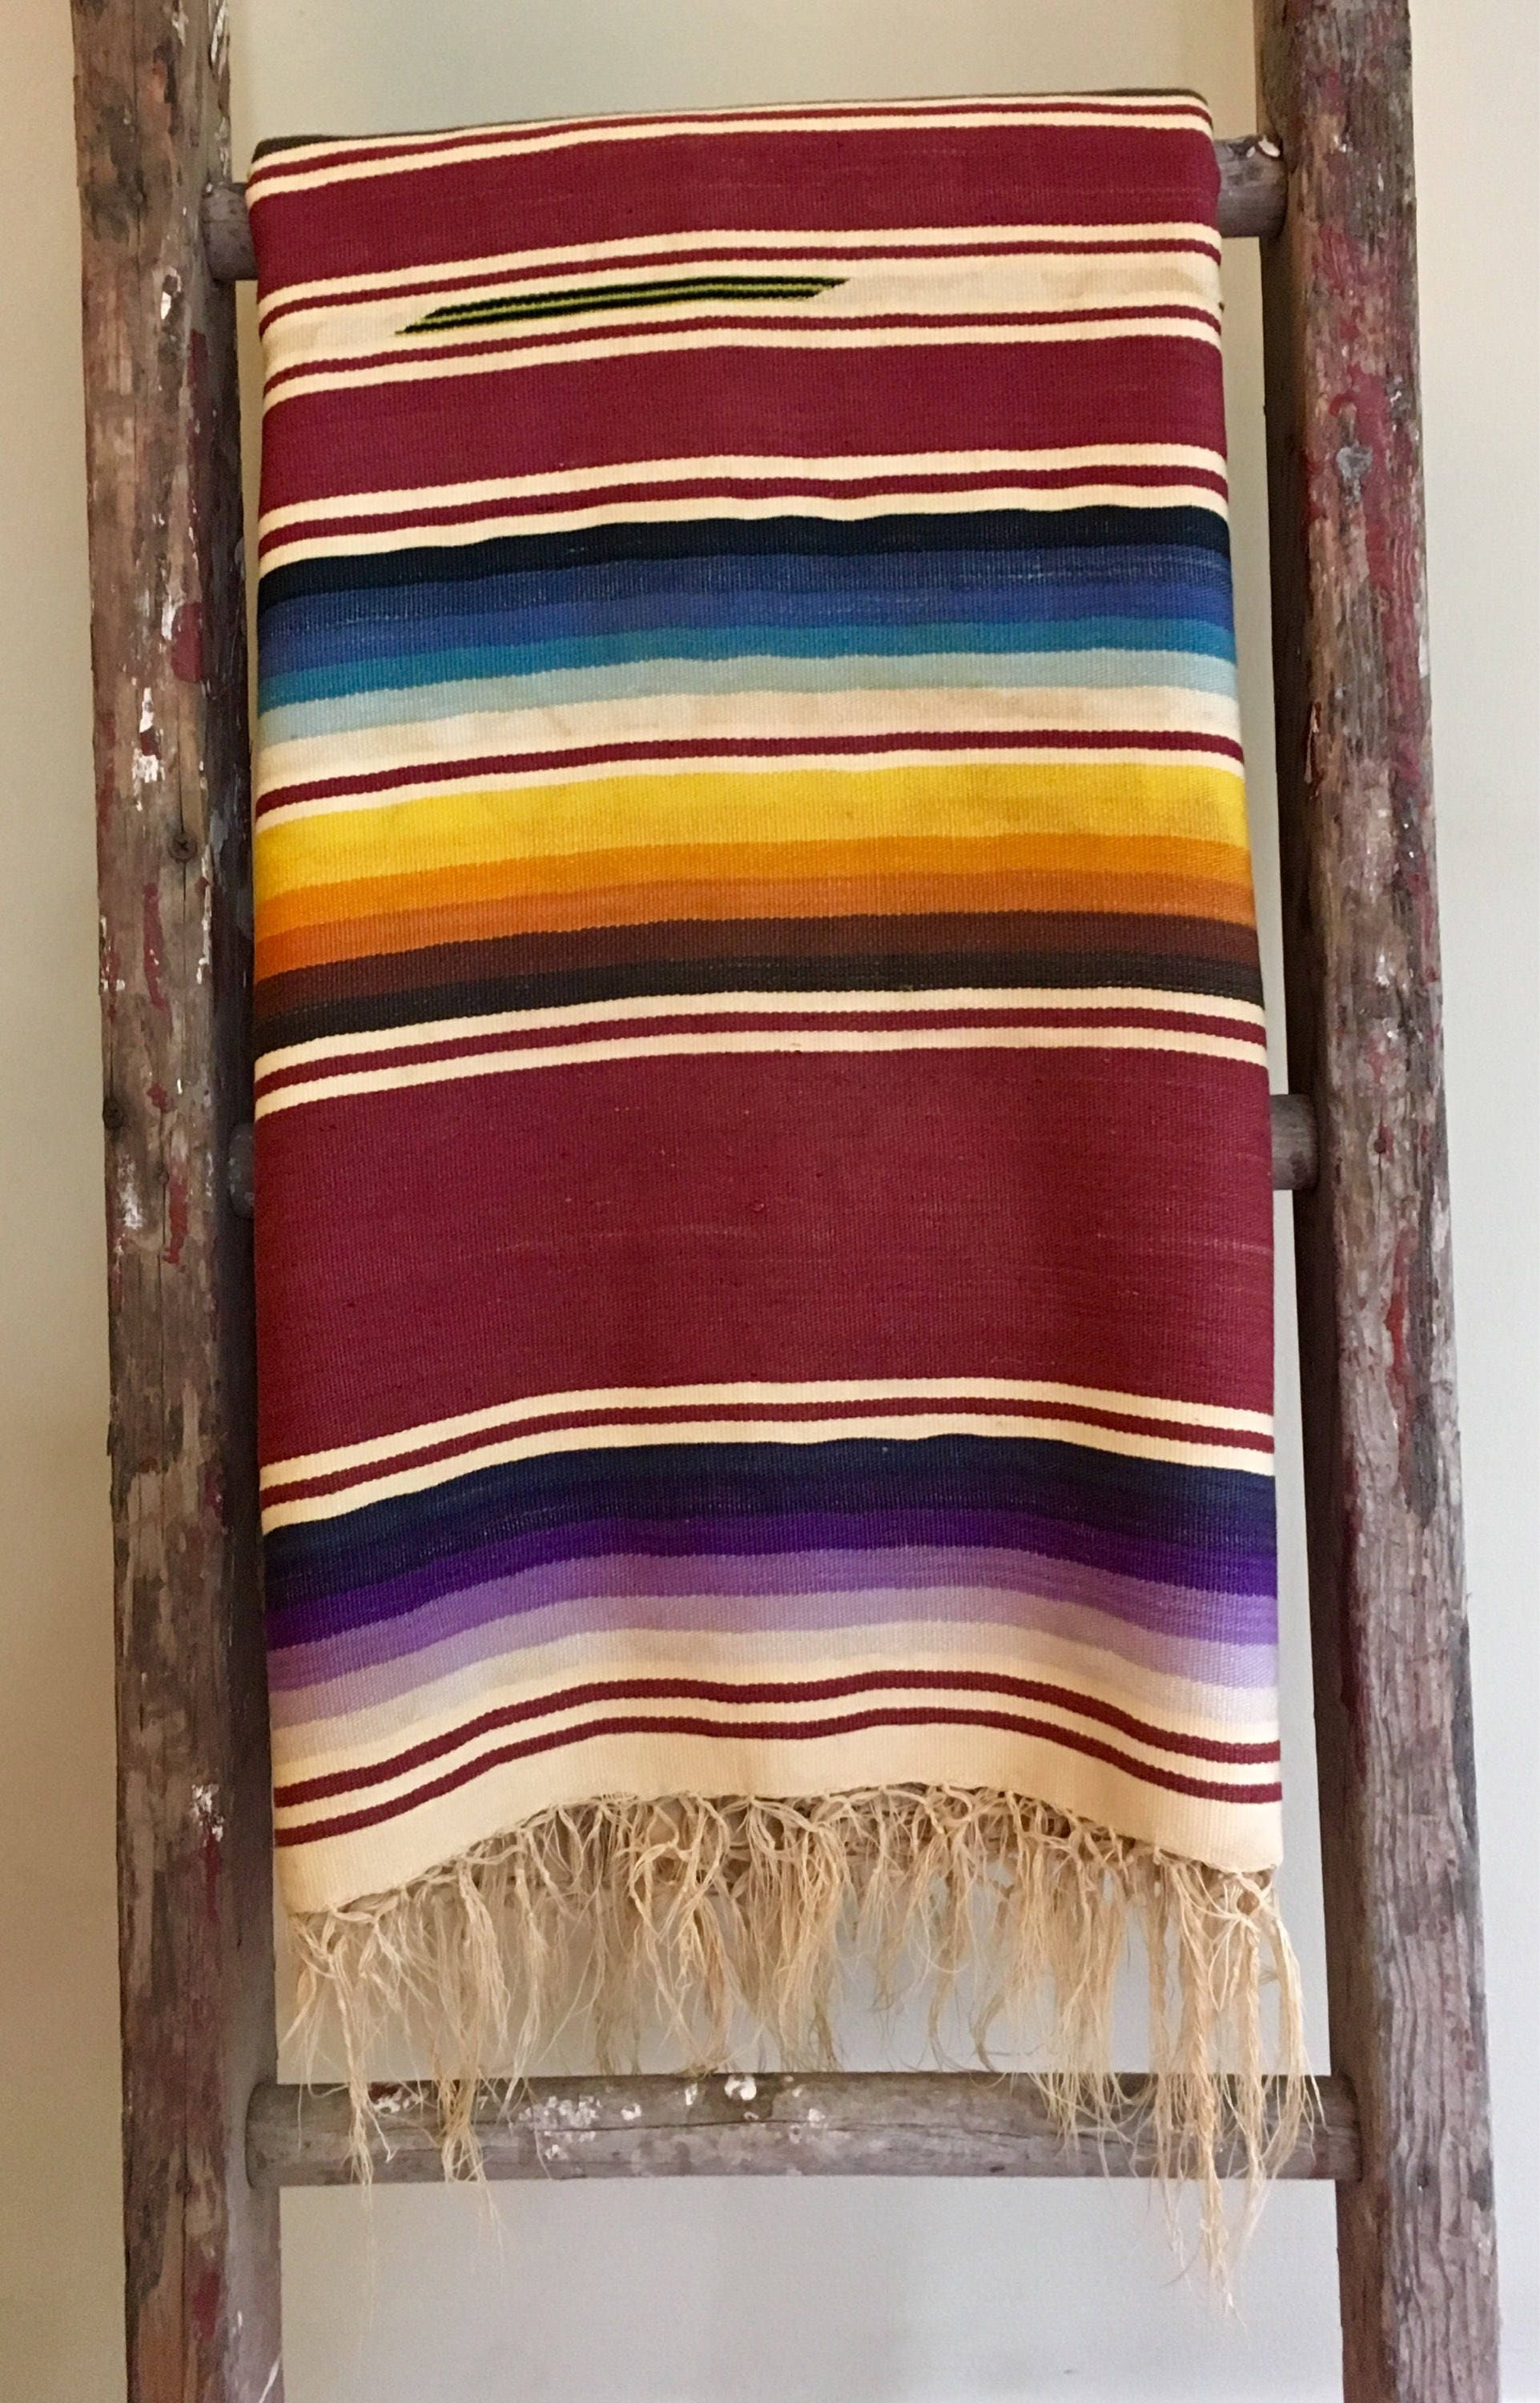 Vintage Serape Saltillo Blanket 40s Throw Woven Mexican